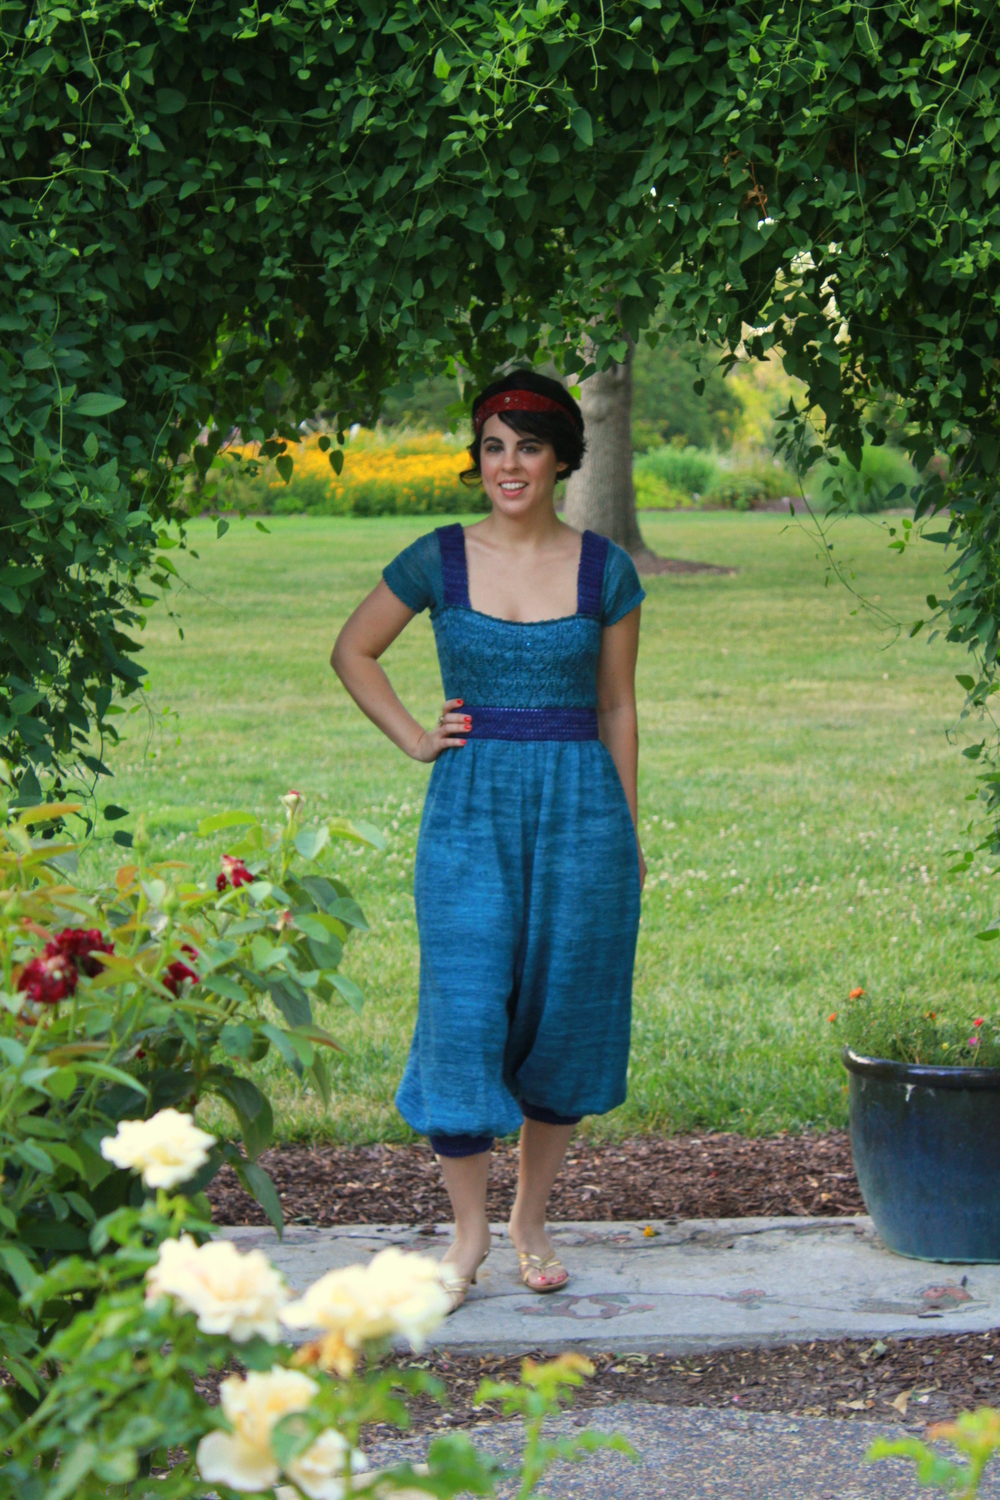 The Downton Abbey-inspired Lady Sybil jumpsuit.